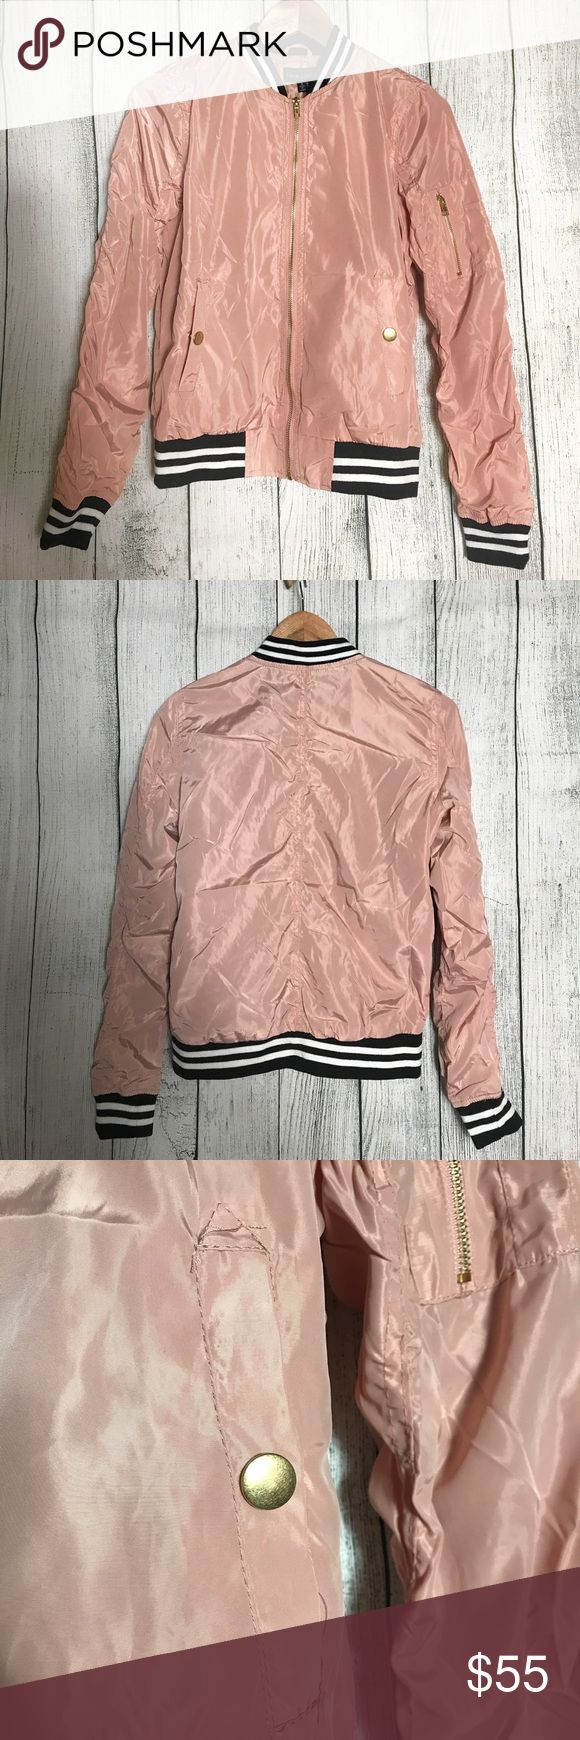 New Look Bomber Jacket Brand new jackets with zipper accent on left arm. Elastic striped B&W hems and collar. Materials on last photo. New Look Jackets & Coats